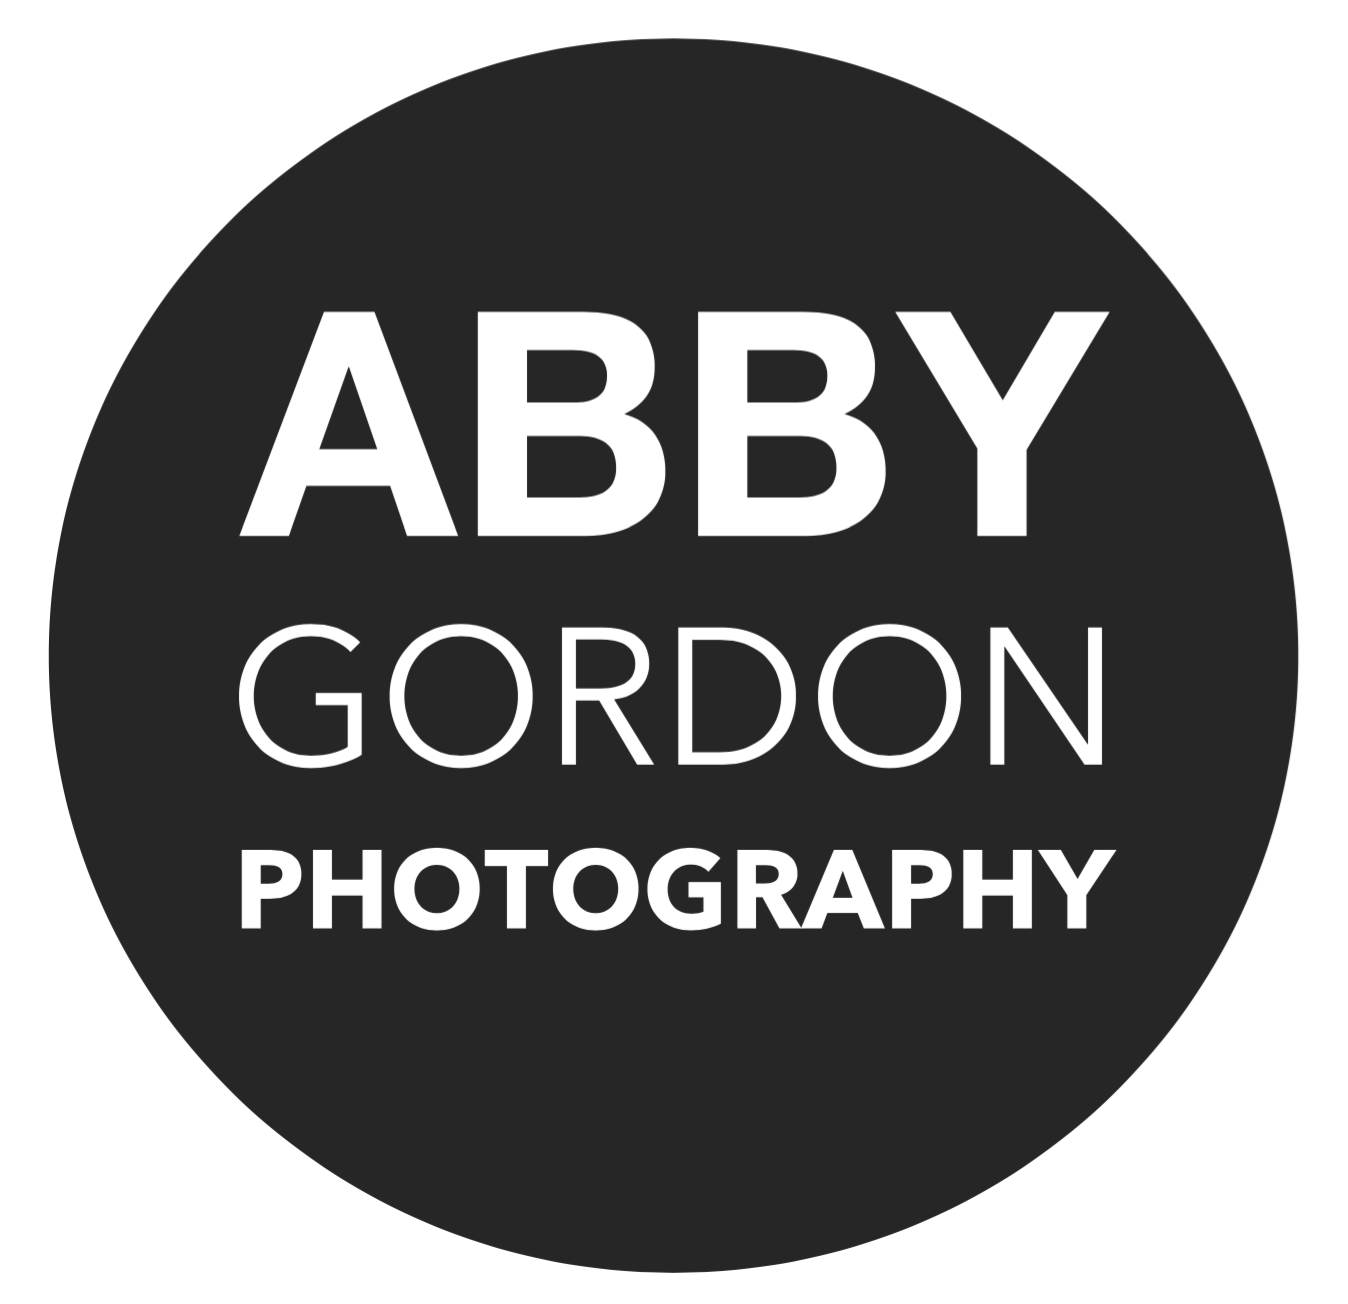 ABBY GORDON